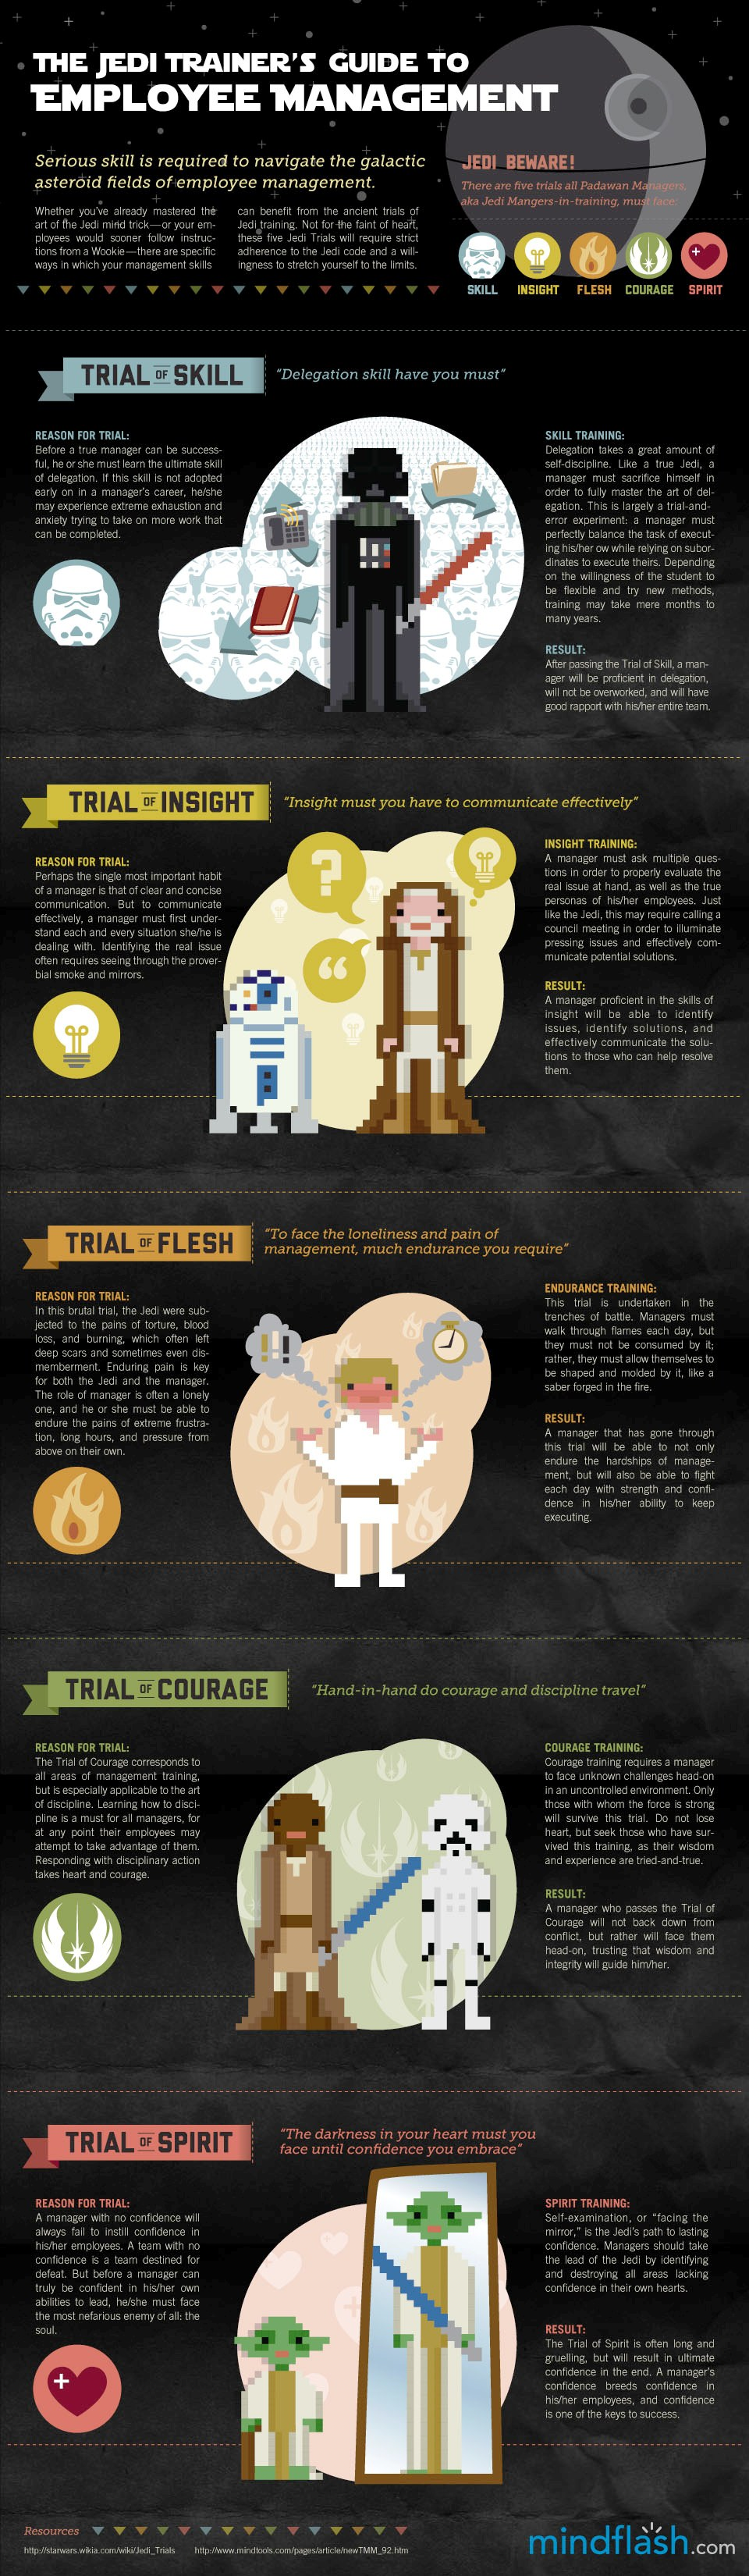 Infographic-The-Jedi-Trainers-Guide-To-Employee-Management